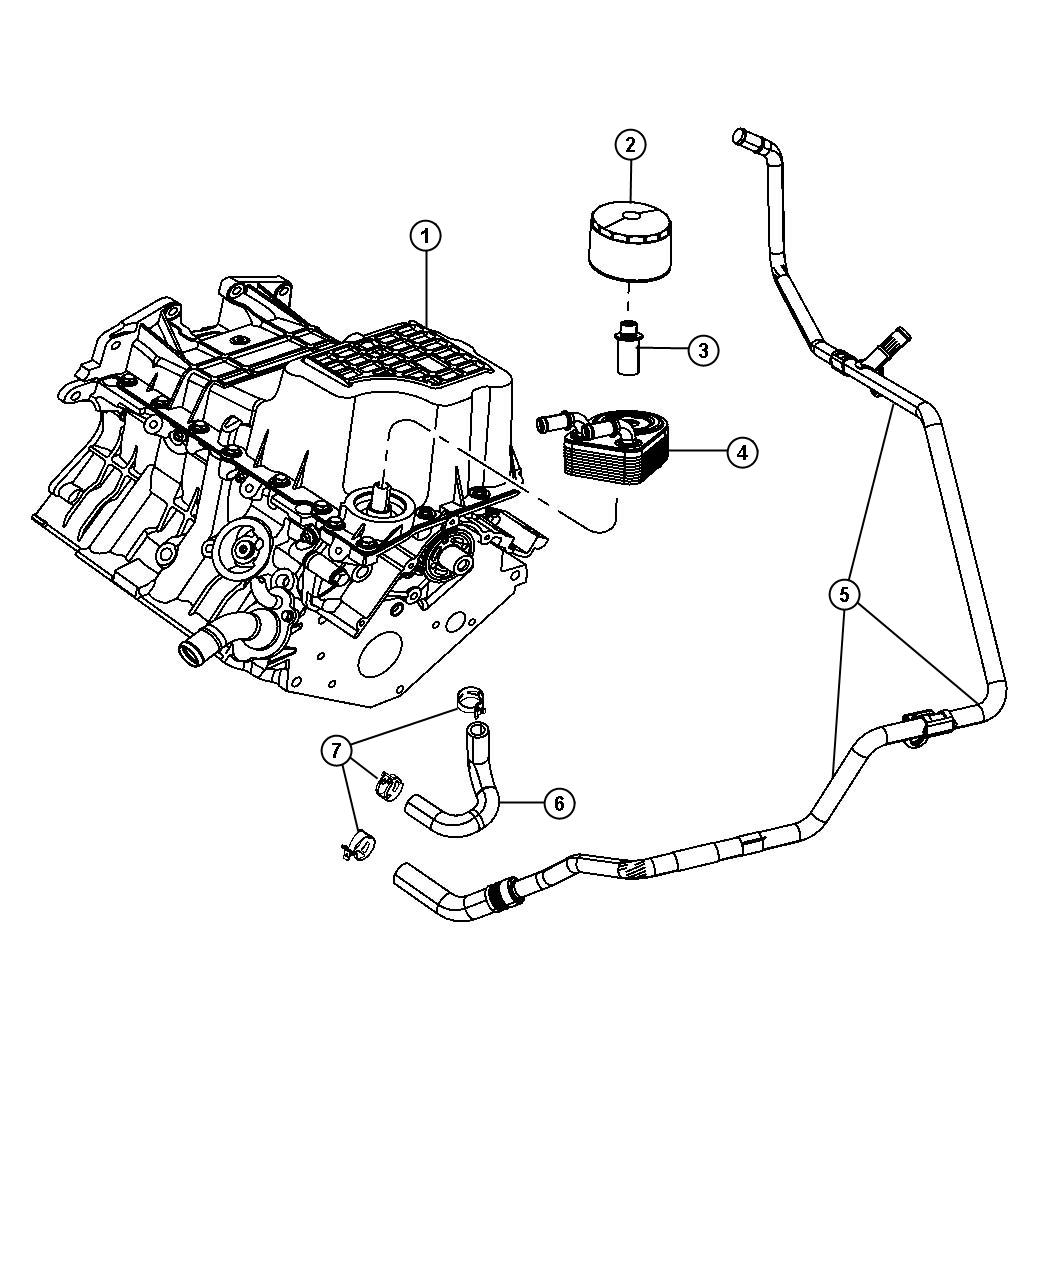 Chrysler concorde engine diagram free